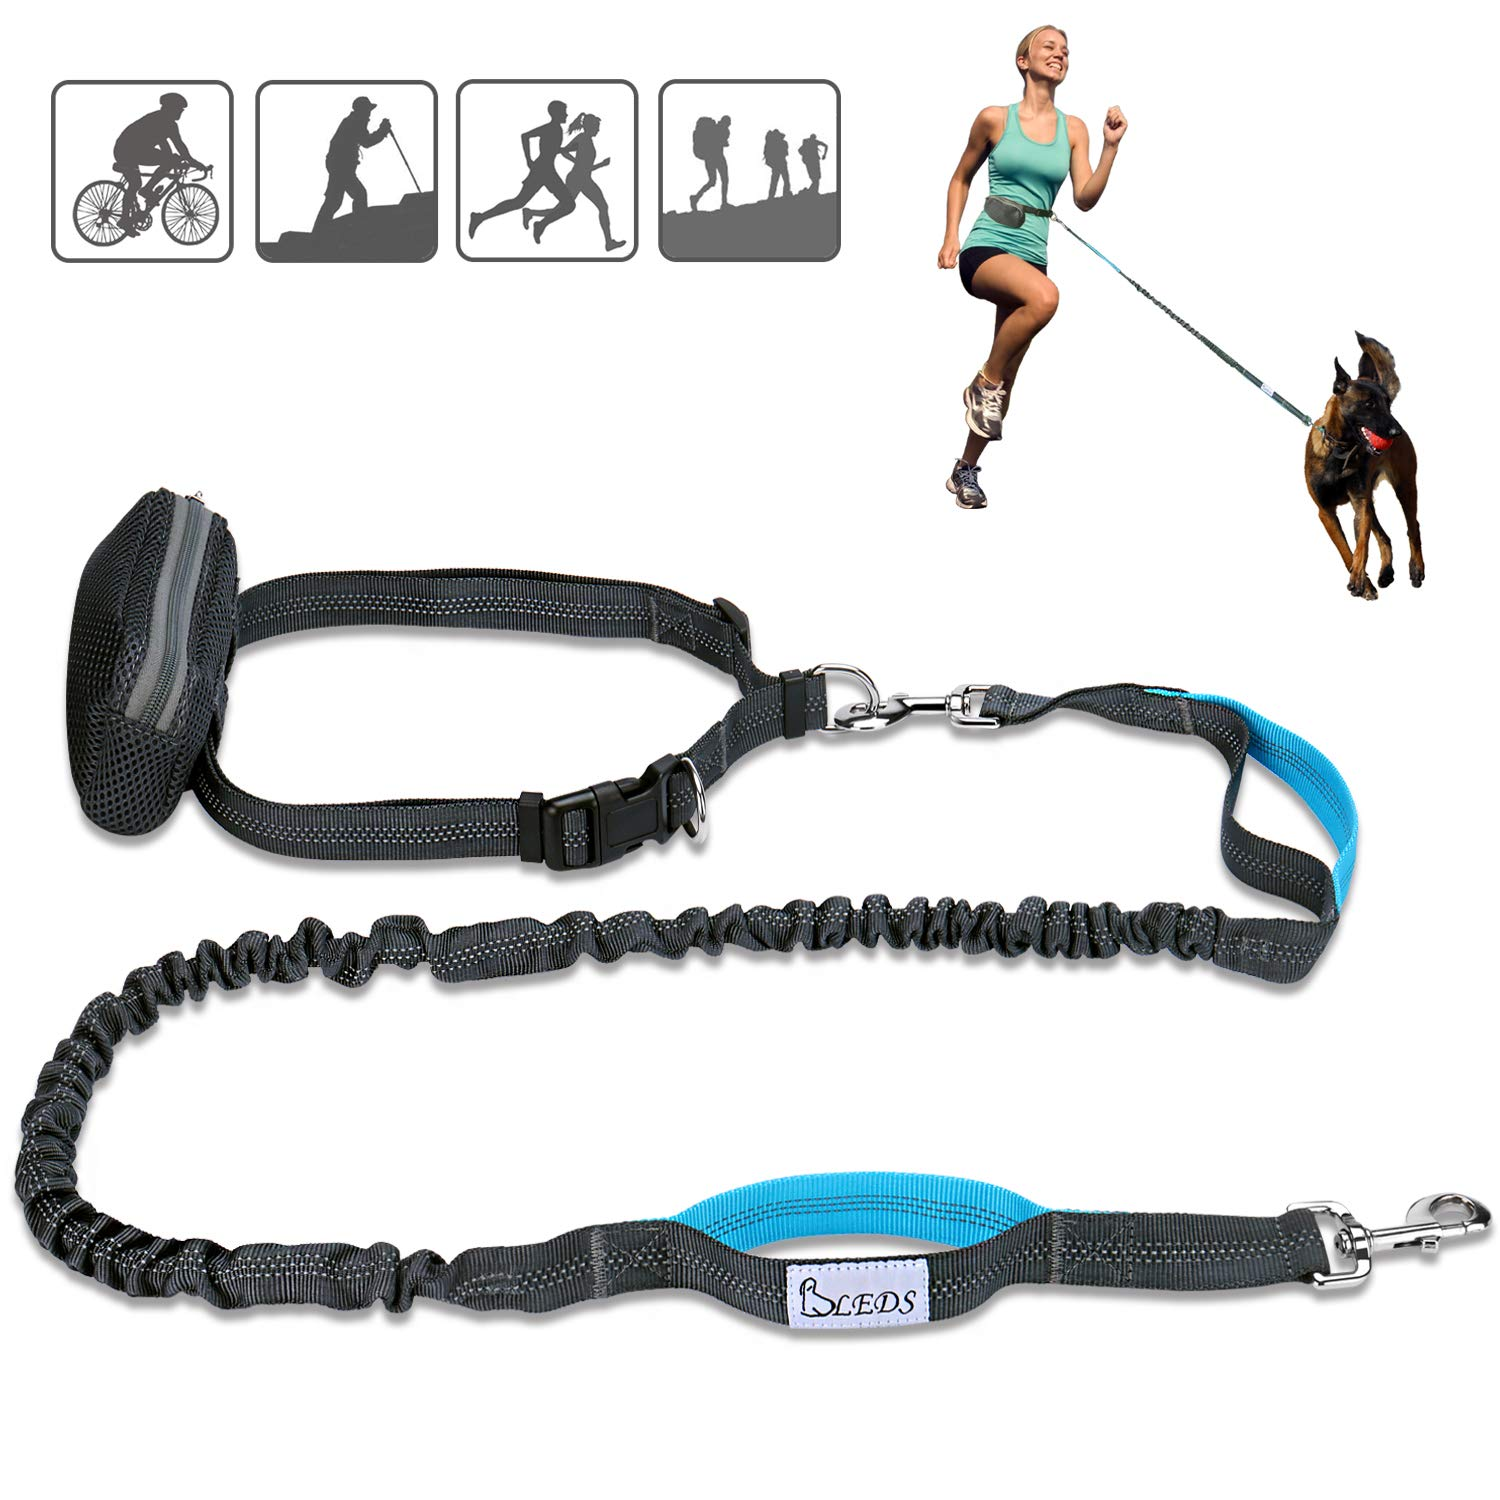 BLEDS Retractable Hands Free Dog Leash, Durable Dual Handles Bungee Leash for Up to 150 lbs Dogs, Extendable Leash for Running Walking Hiking Training, Comes with a Waist Pouch